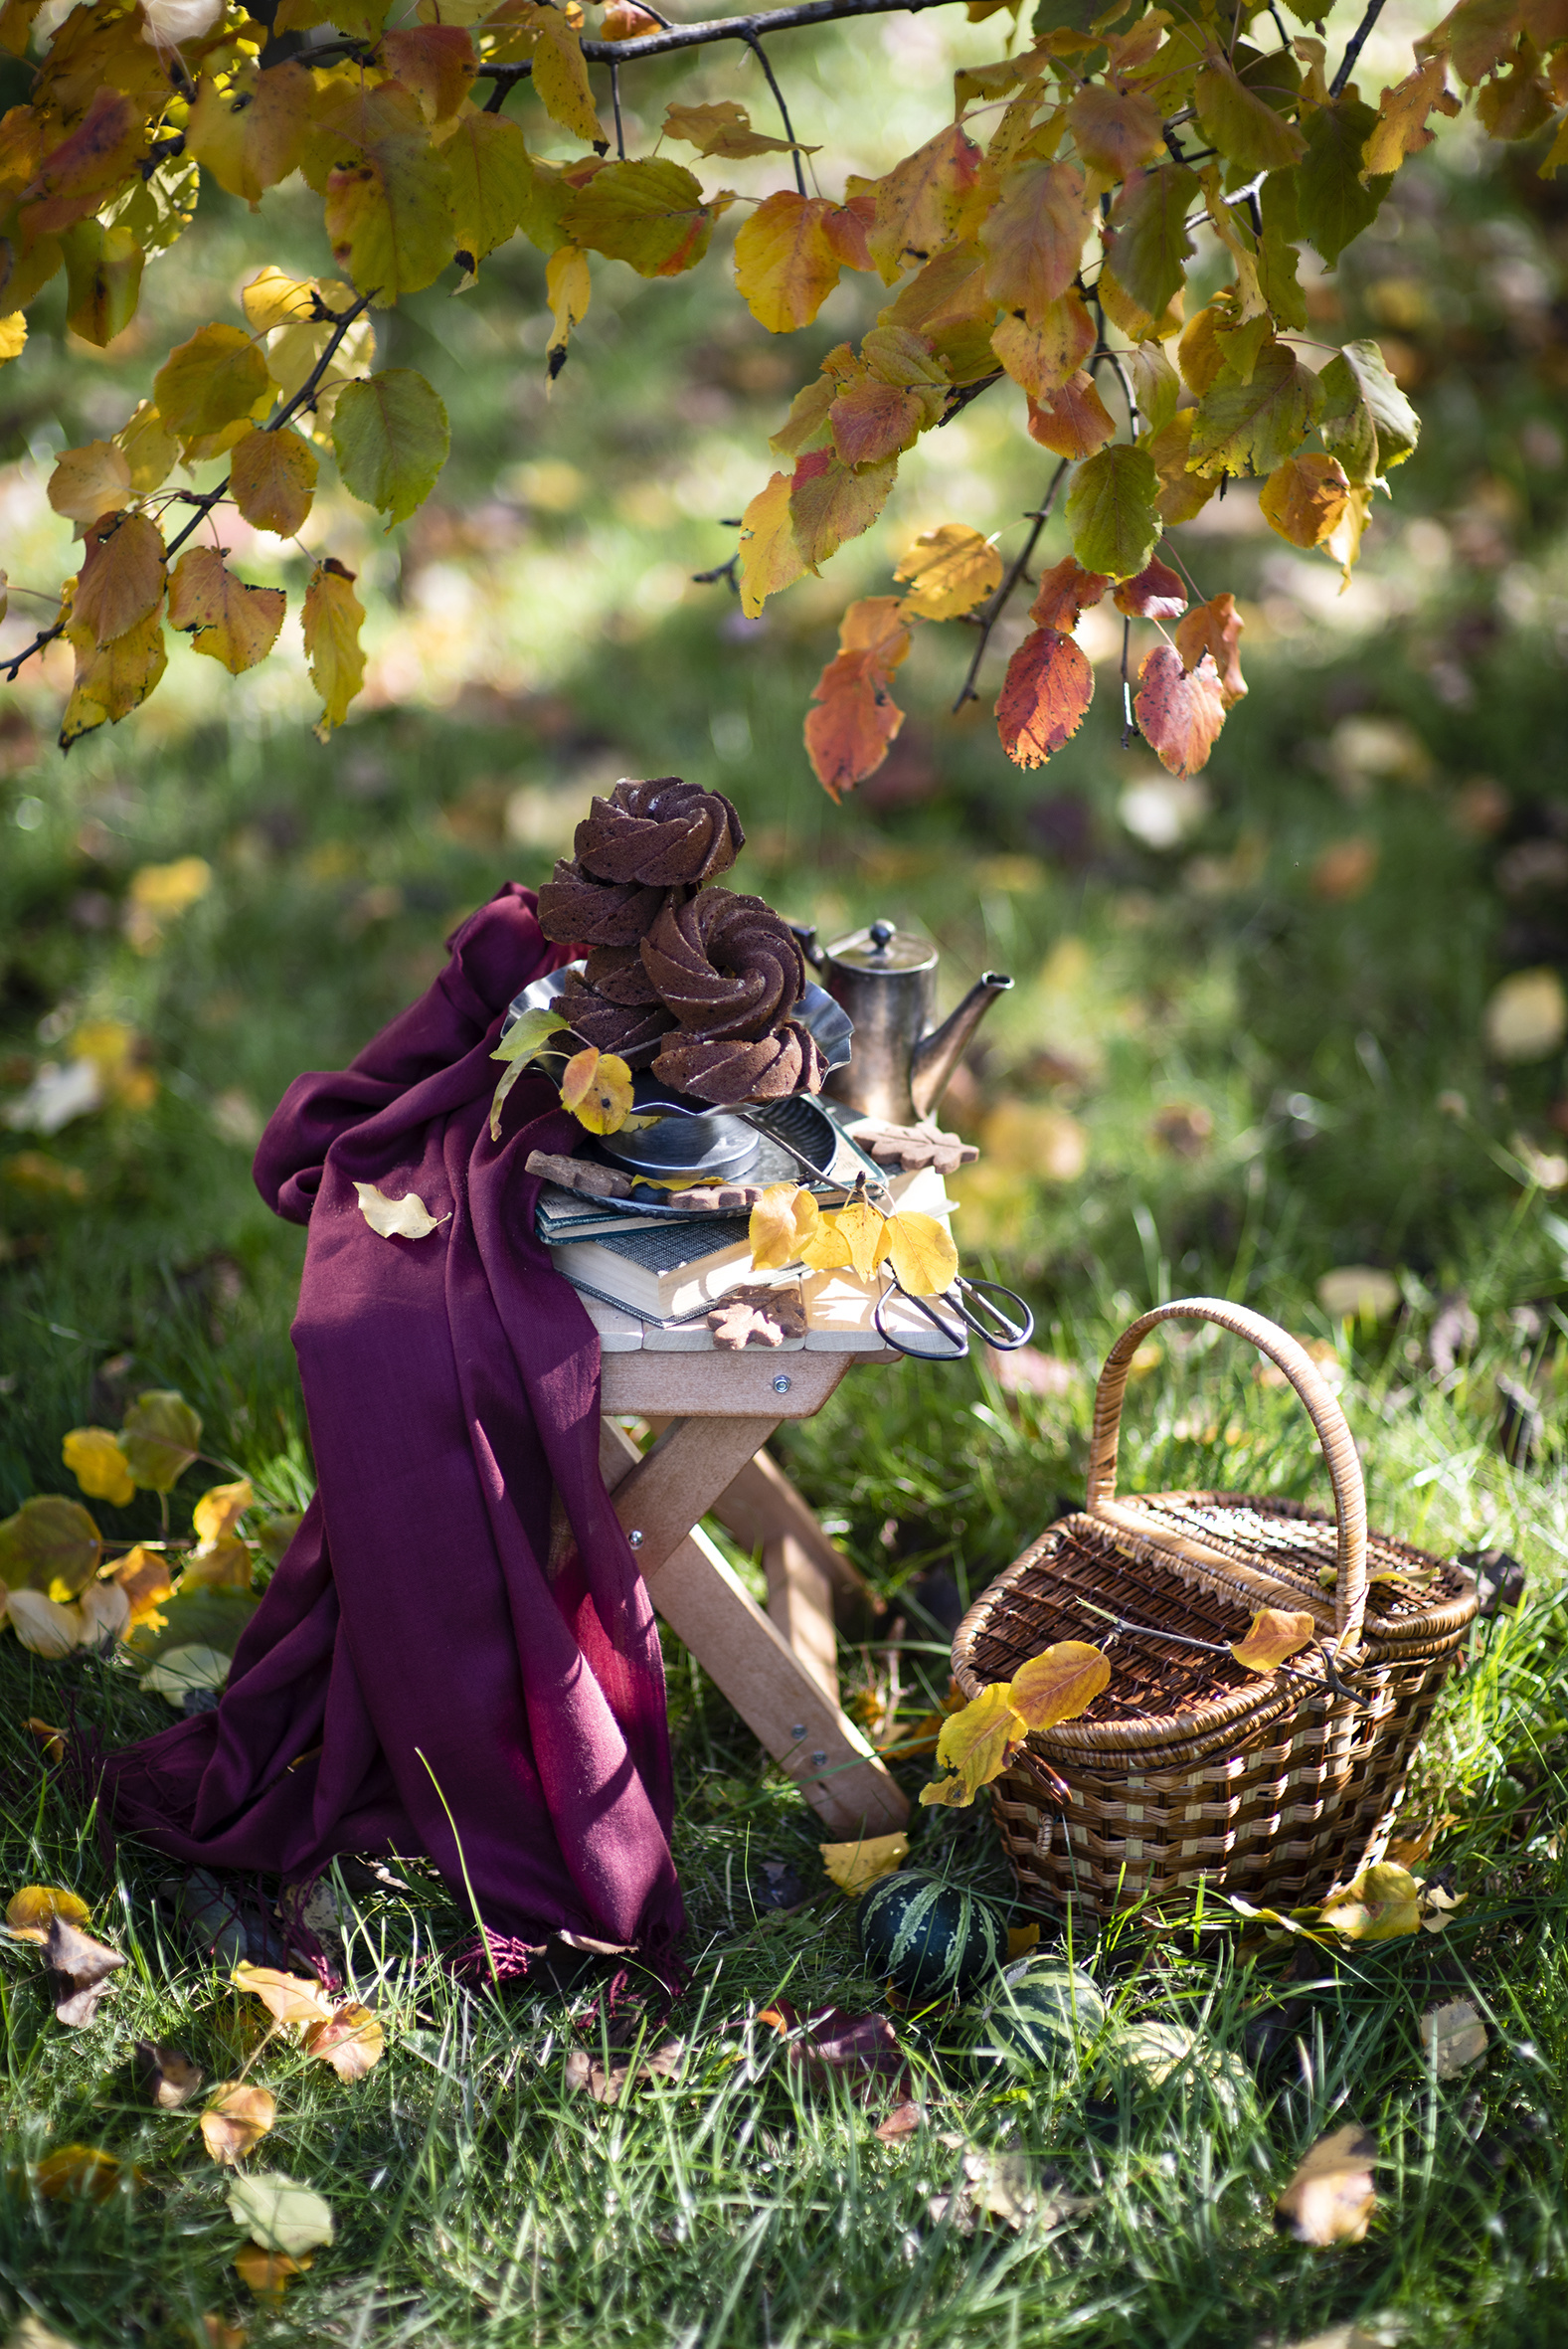 Pictures Foliage Autumn Wicker basket Food Grass Branches Pastry Still-life  for Mobile phone Leaf baking